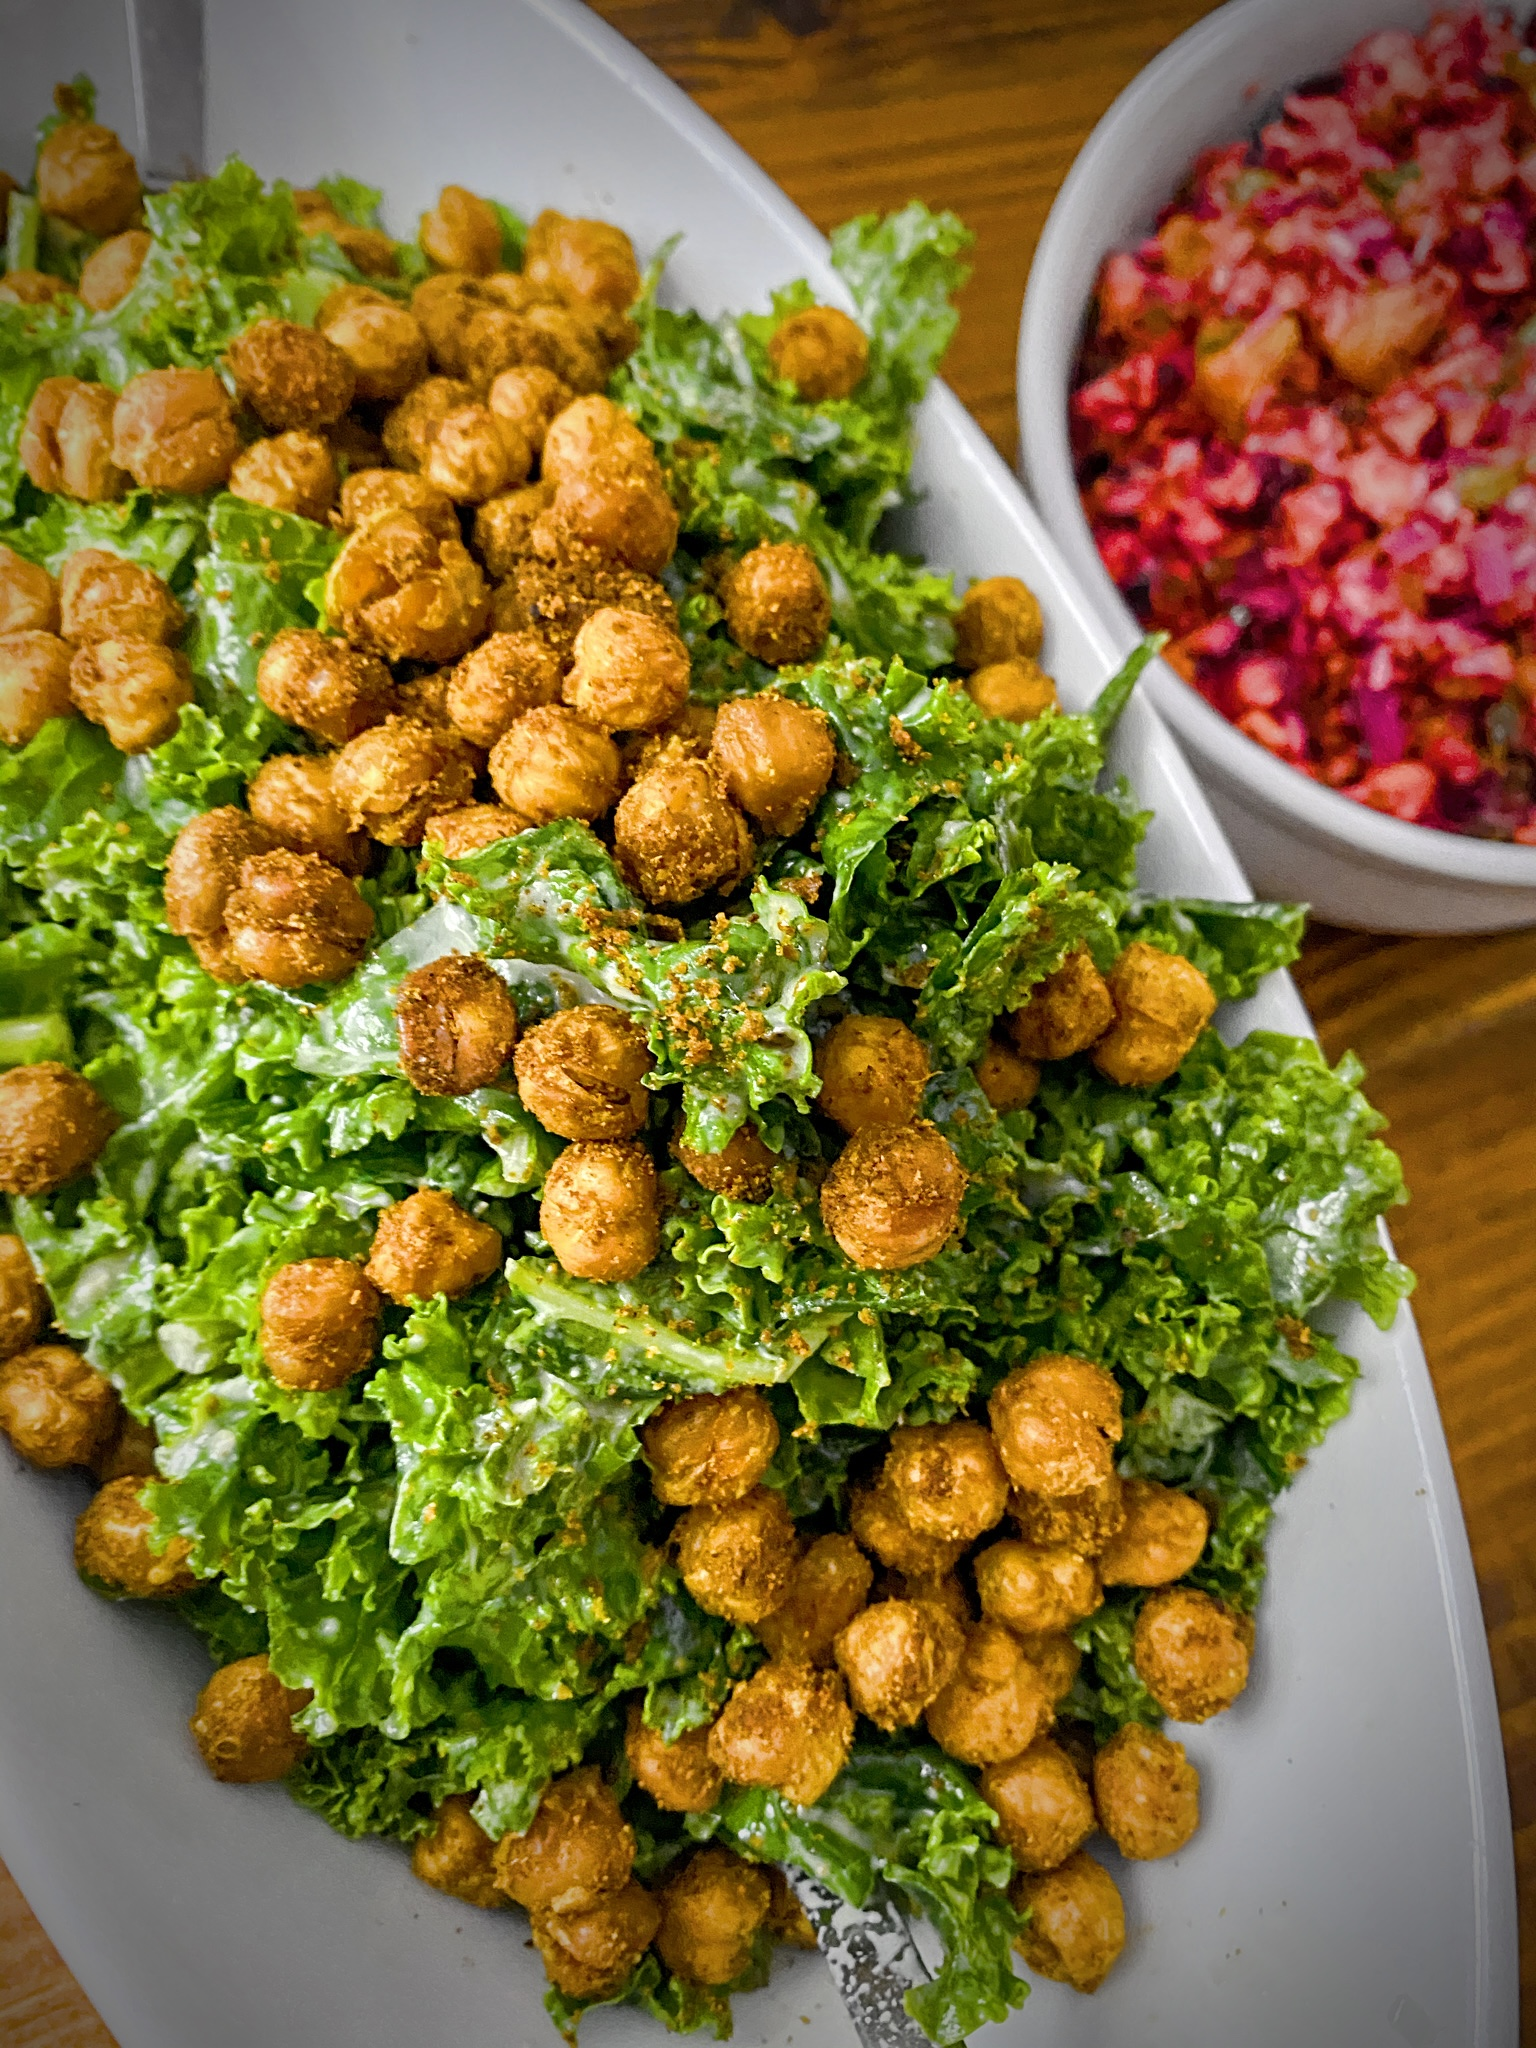 kale salad with tandoori roasted chickpeas in an oblong white dish on a wooden table with a bowl of cranberry relish to the side